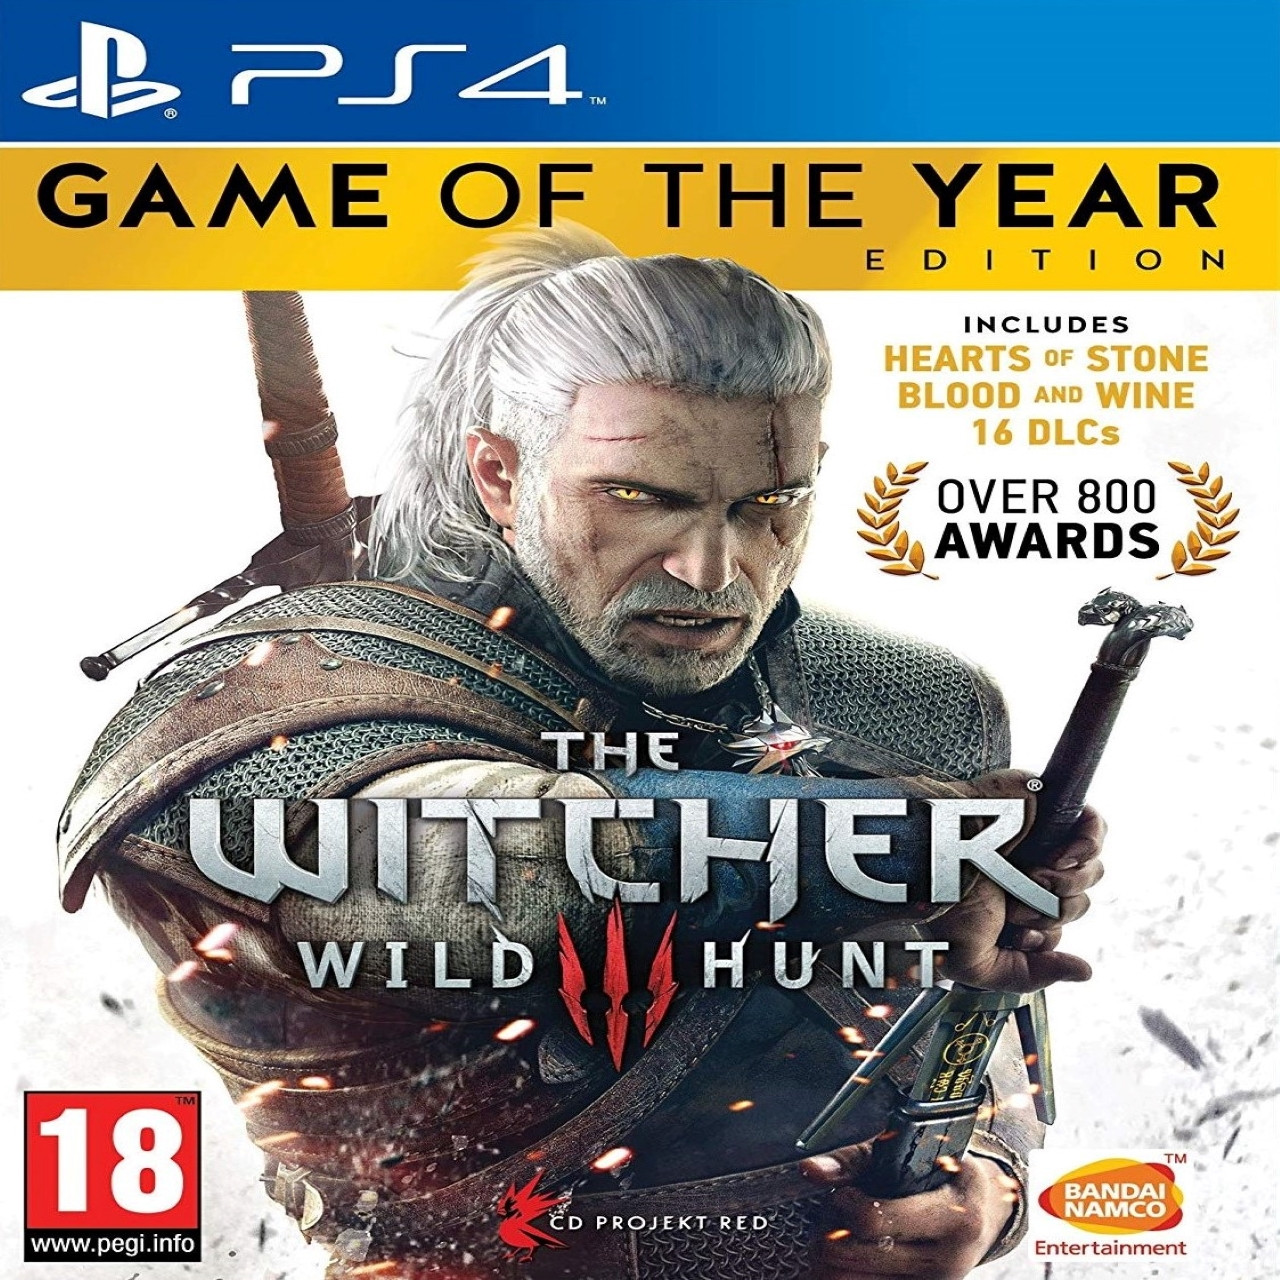 The Witcher 3: Wild Hunt game of the year edition SUB PS4 (NEW)